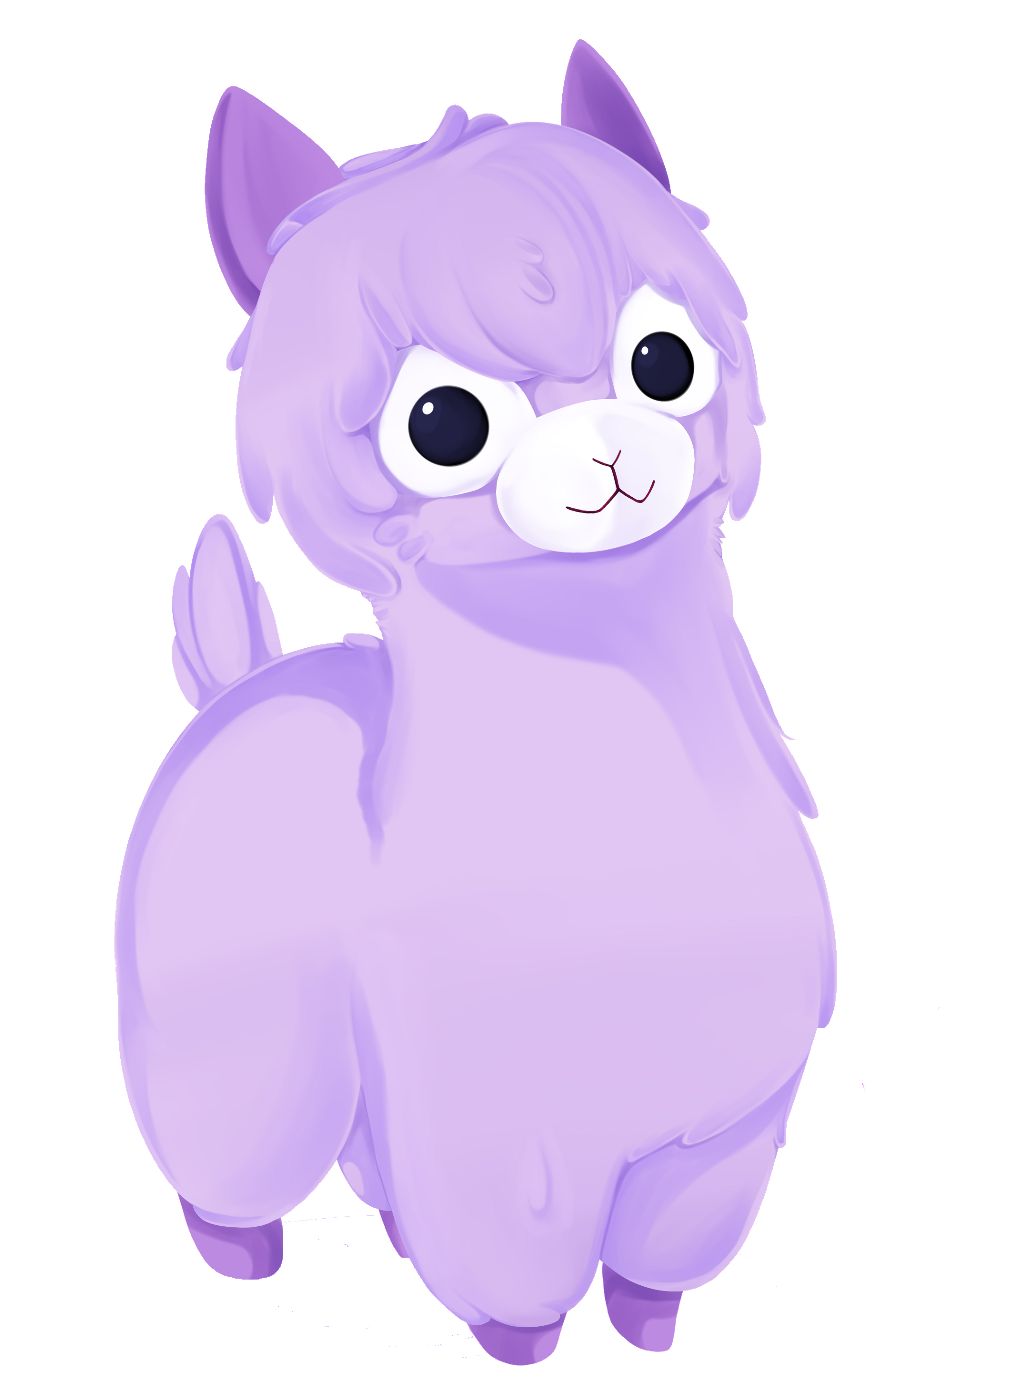 Cute cartoon llama png. Image astro alpaca mathprodigy